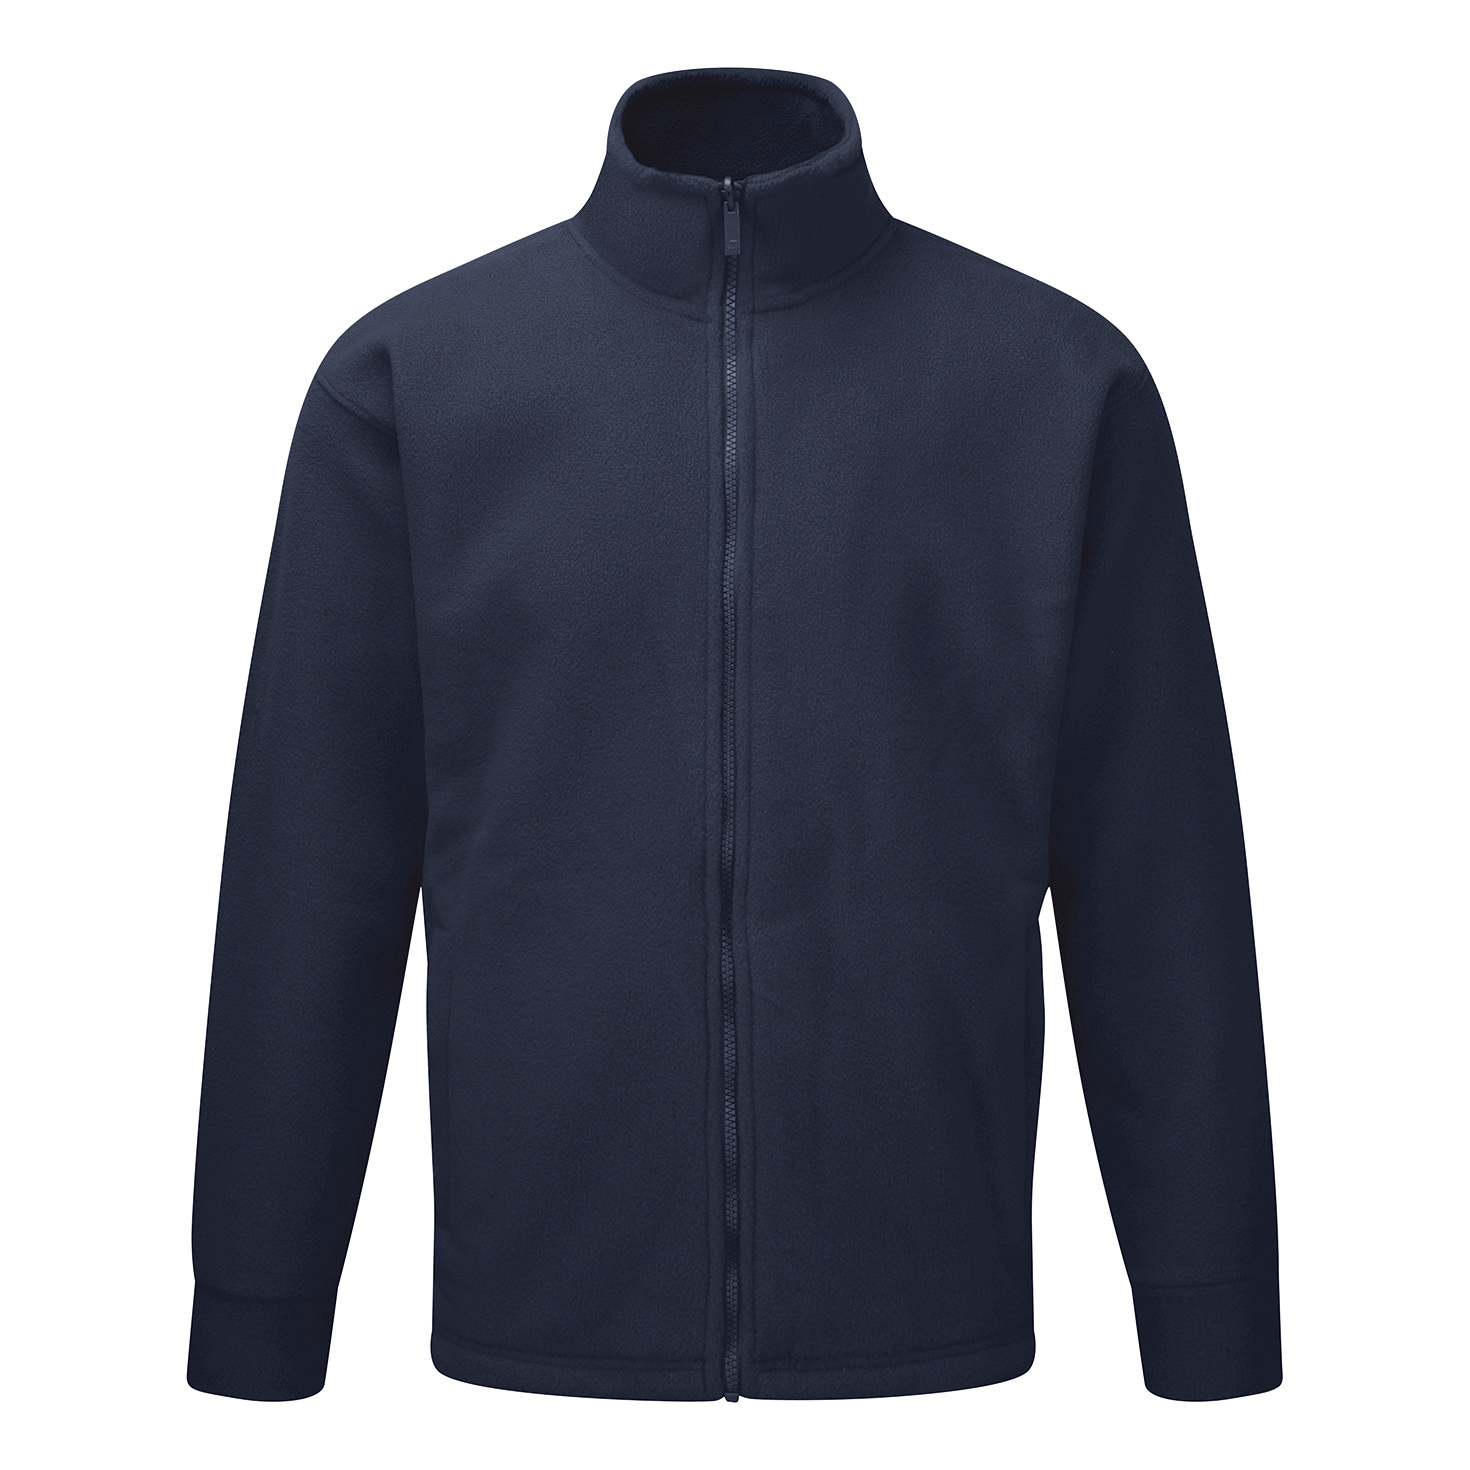 ST Basic Fleece Jkt Elasticated Cuffs and Full Zip Front Extra Large Navy Ref 59094 *Approx 3 Day L/Time*